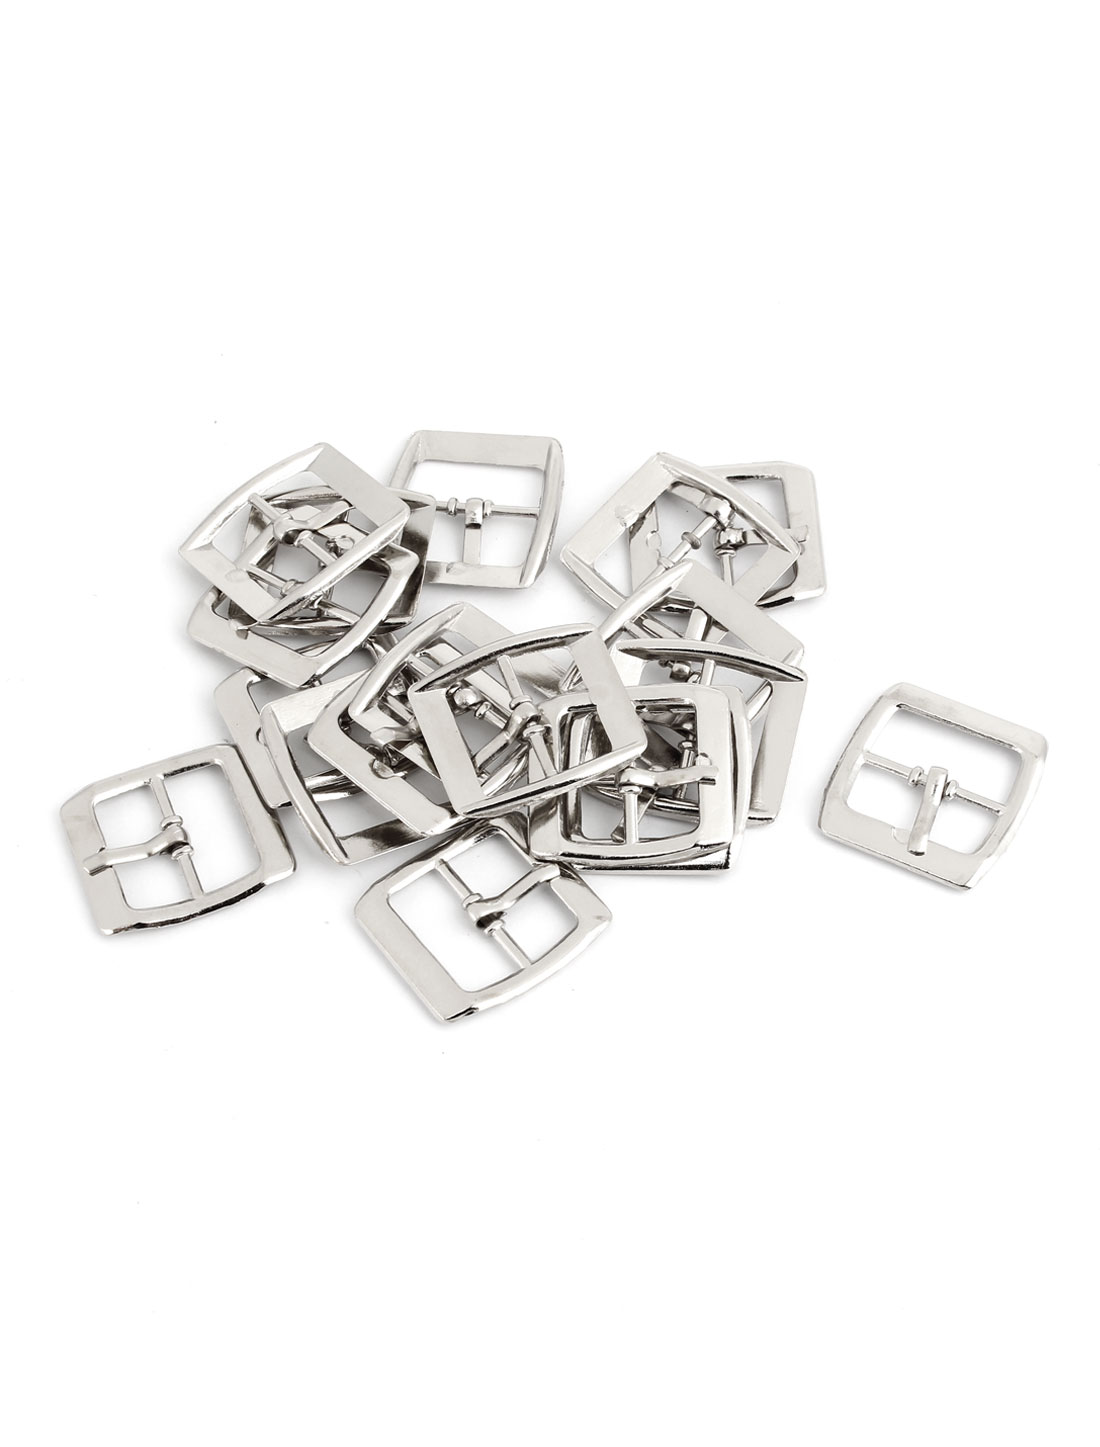 20 Pcs Metallic Single Prong Pin Buckles for 19mm Wide Belt